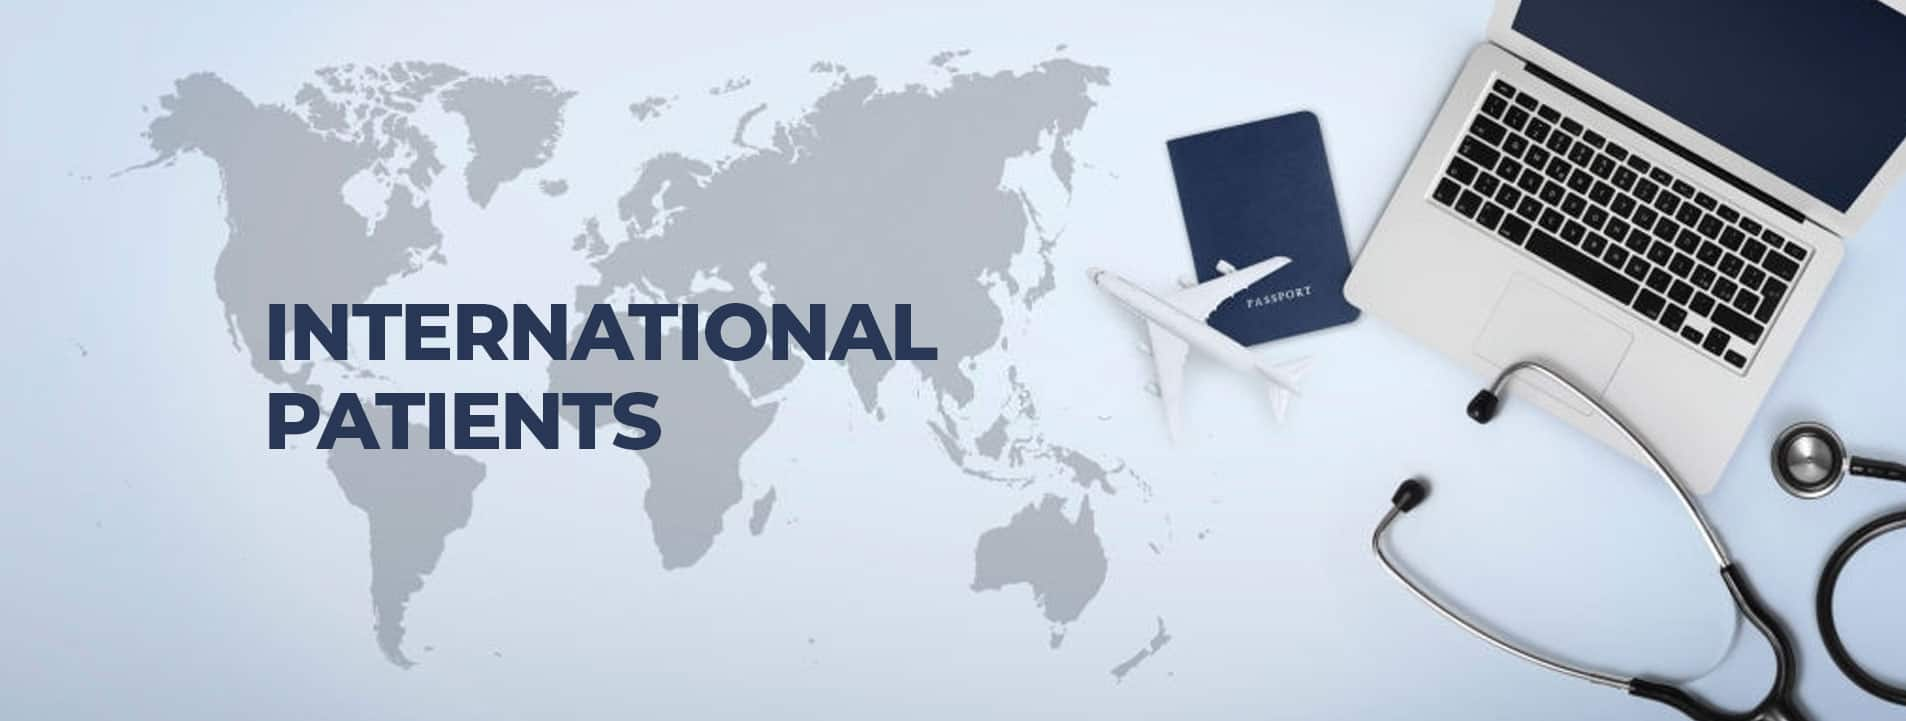 International Patients Cover